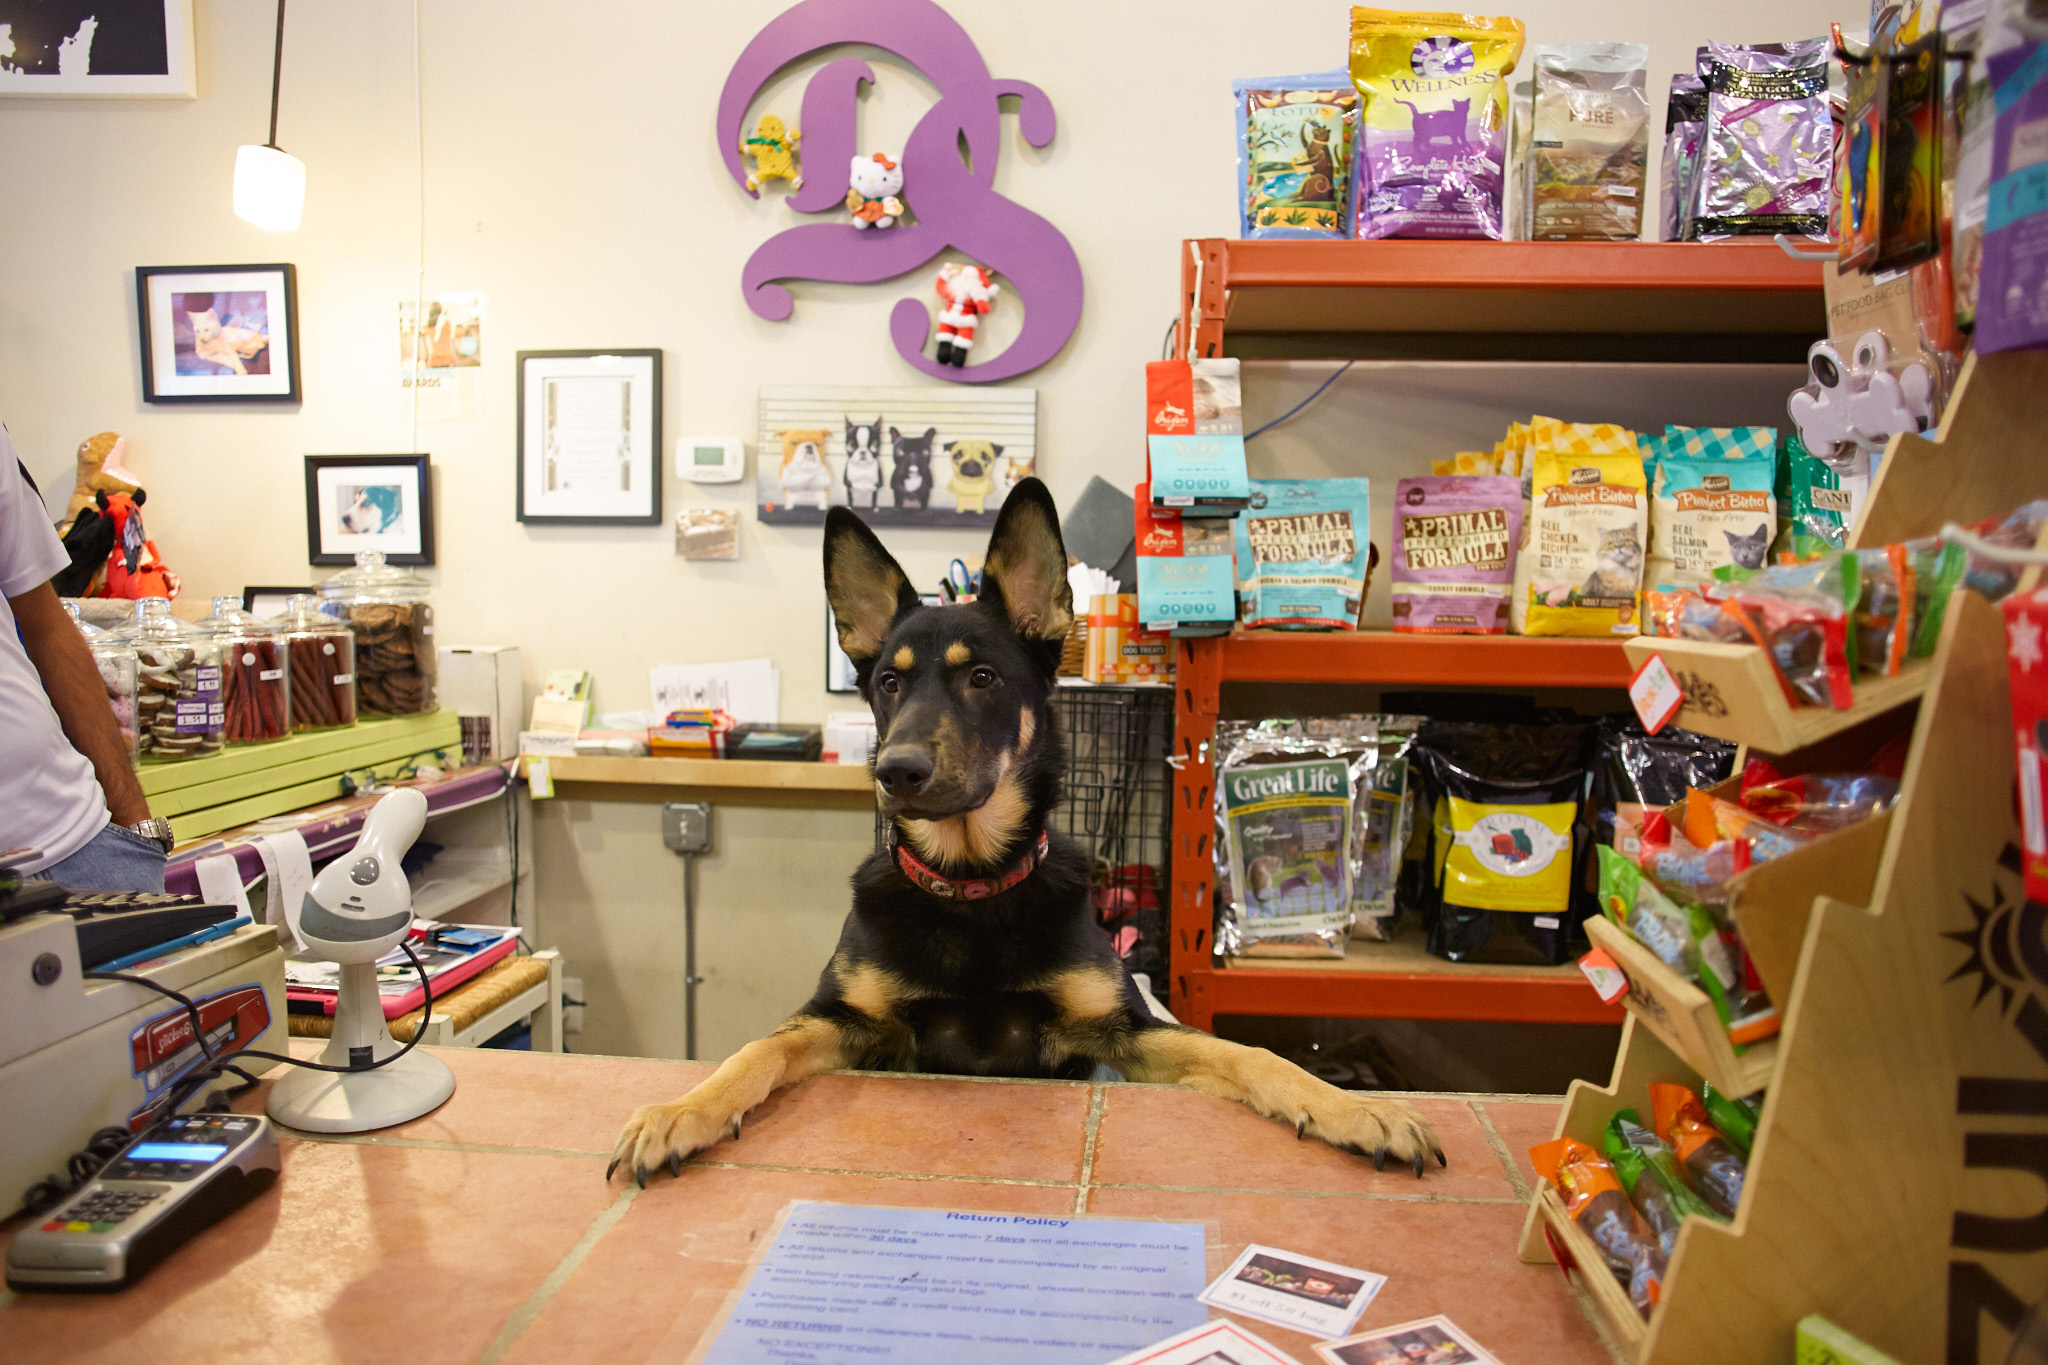 Pet stores in chicago for dog leashes cat collars and more for Fish and pet store